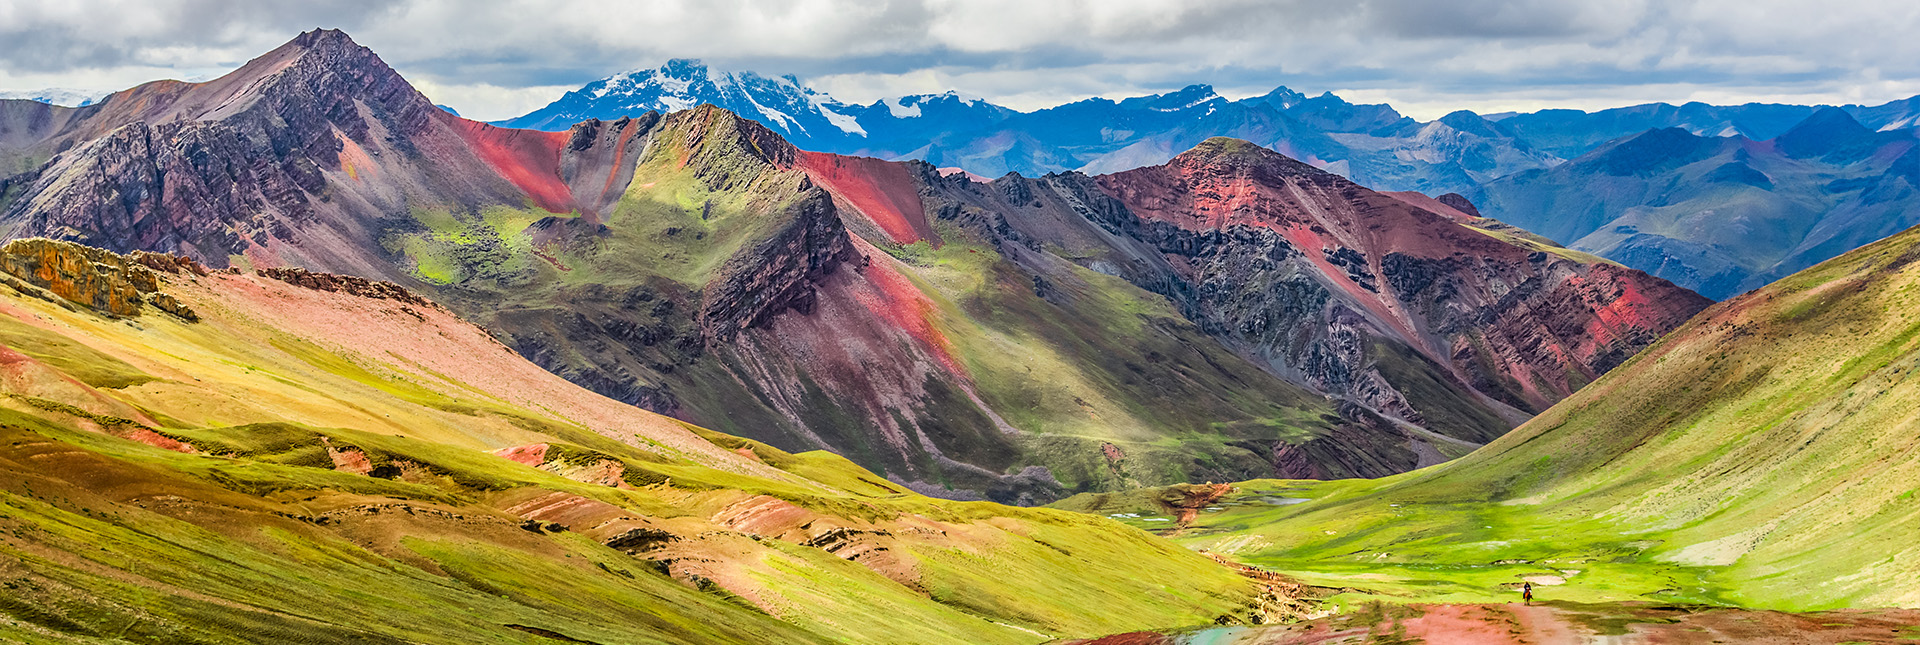 A view of rainbow mountain